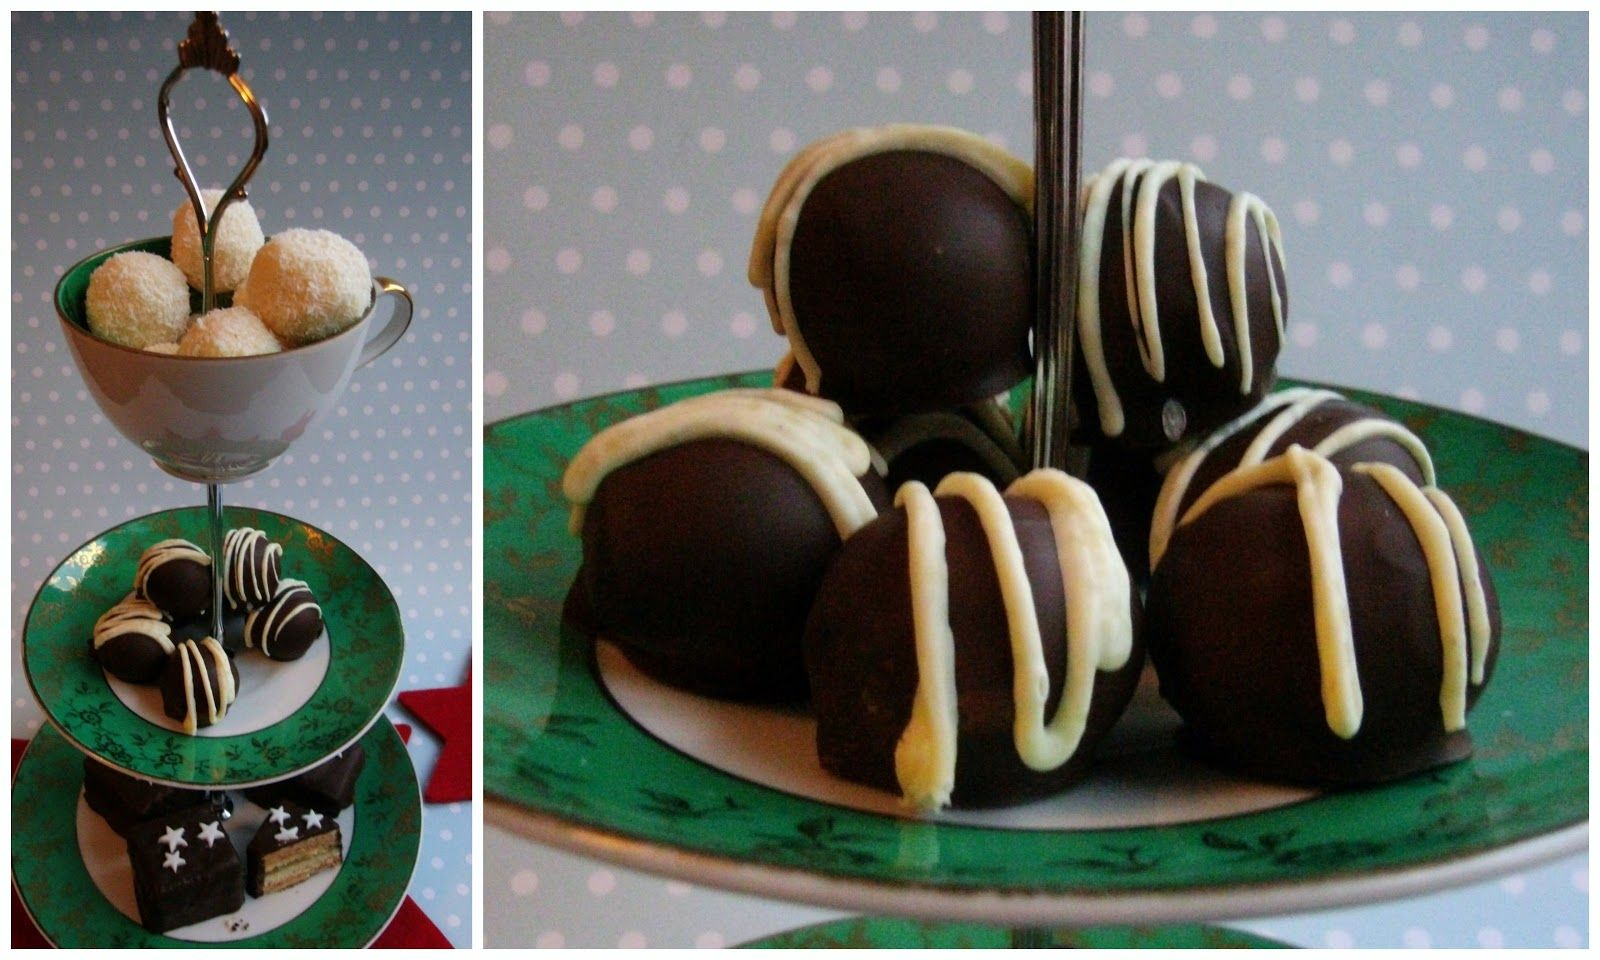 Miss Blueberrymuffin's kitchen: Marzipan-Macadamia-Pralinen